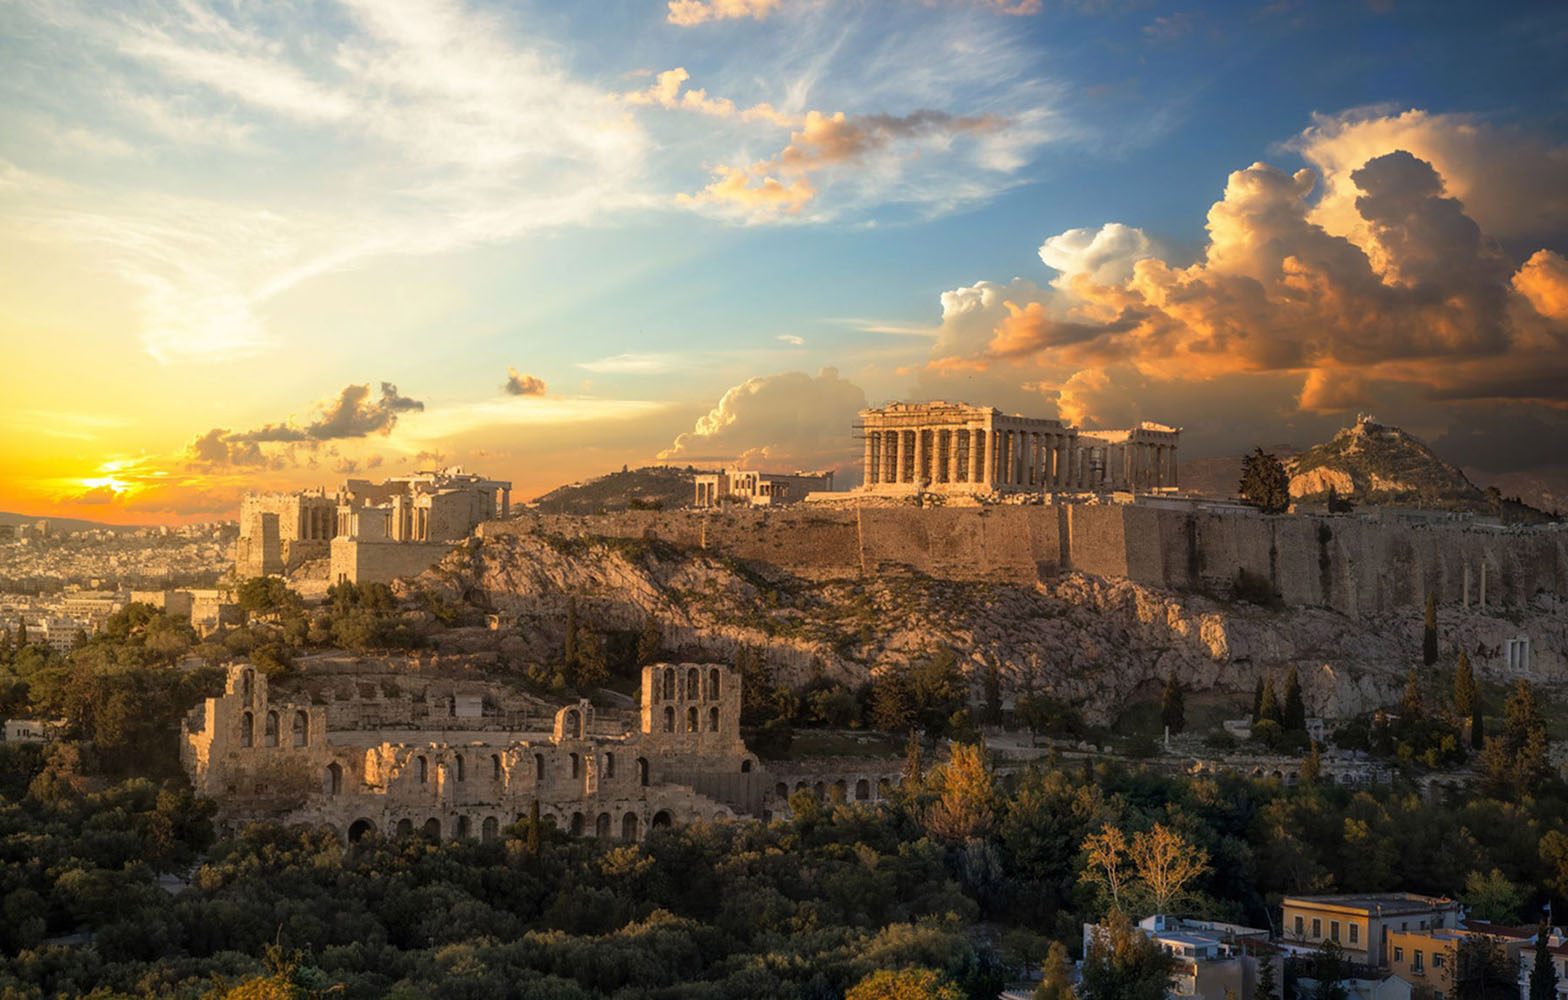 Acropolis of Athens at golden hour with a beautiful dramatic sky